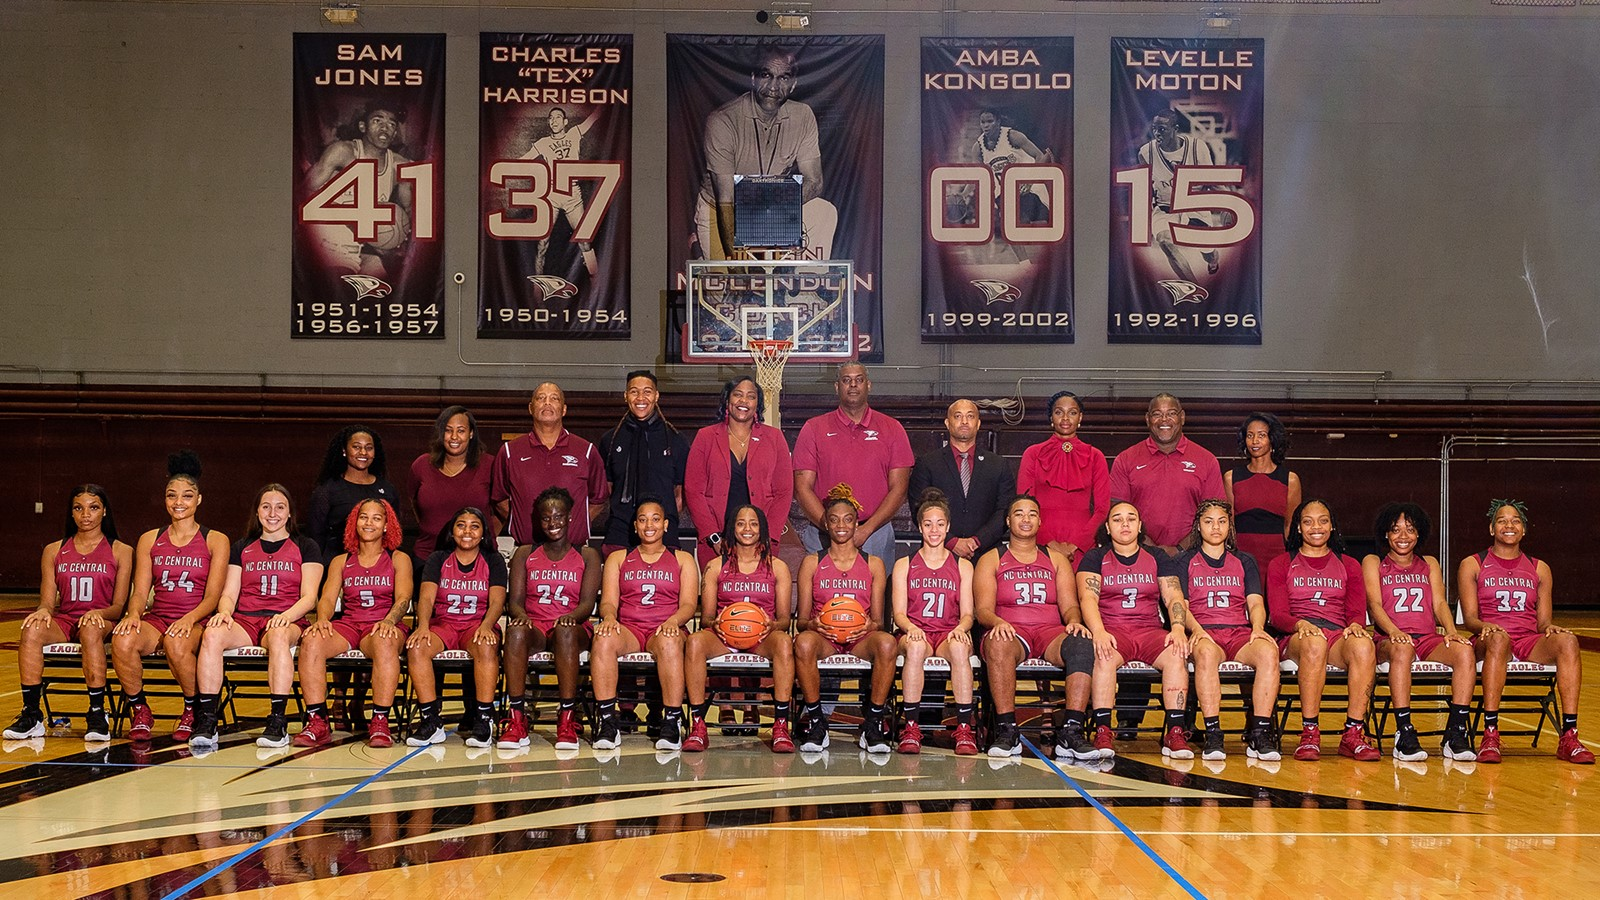 2019 20 Women S Basketball Roster North Carolina Central University Athletics